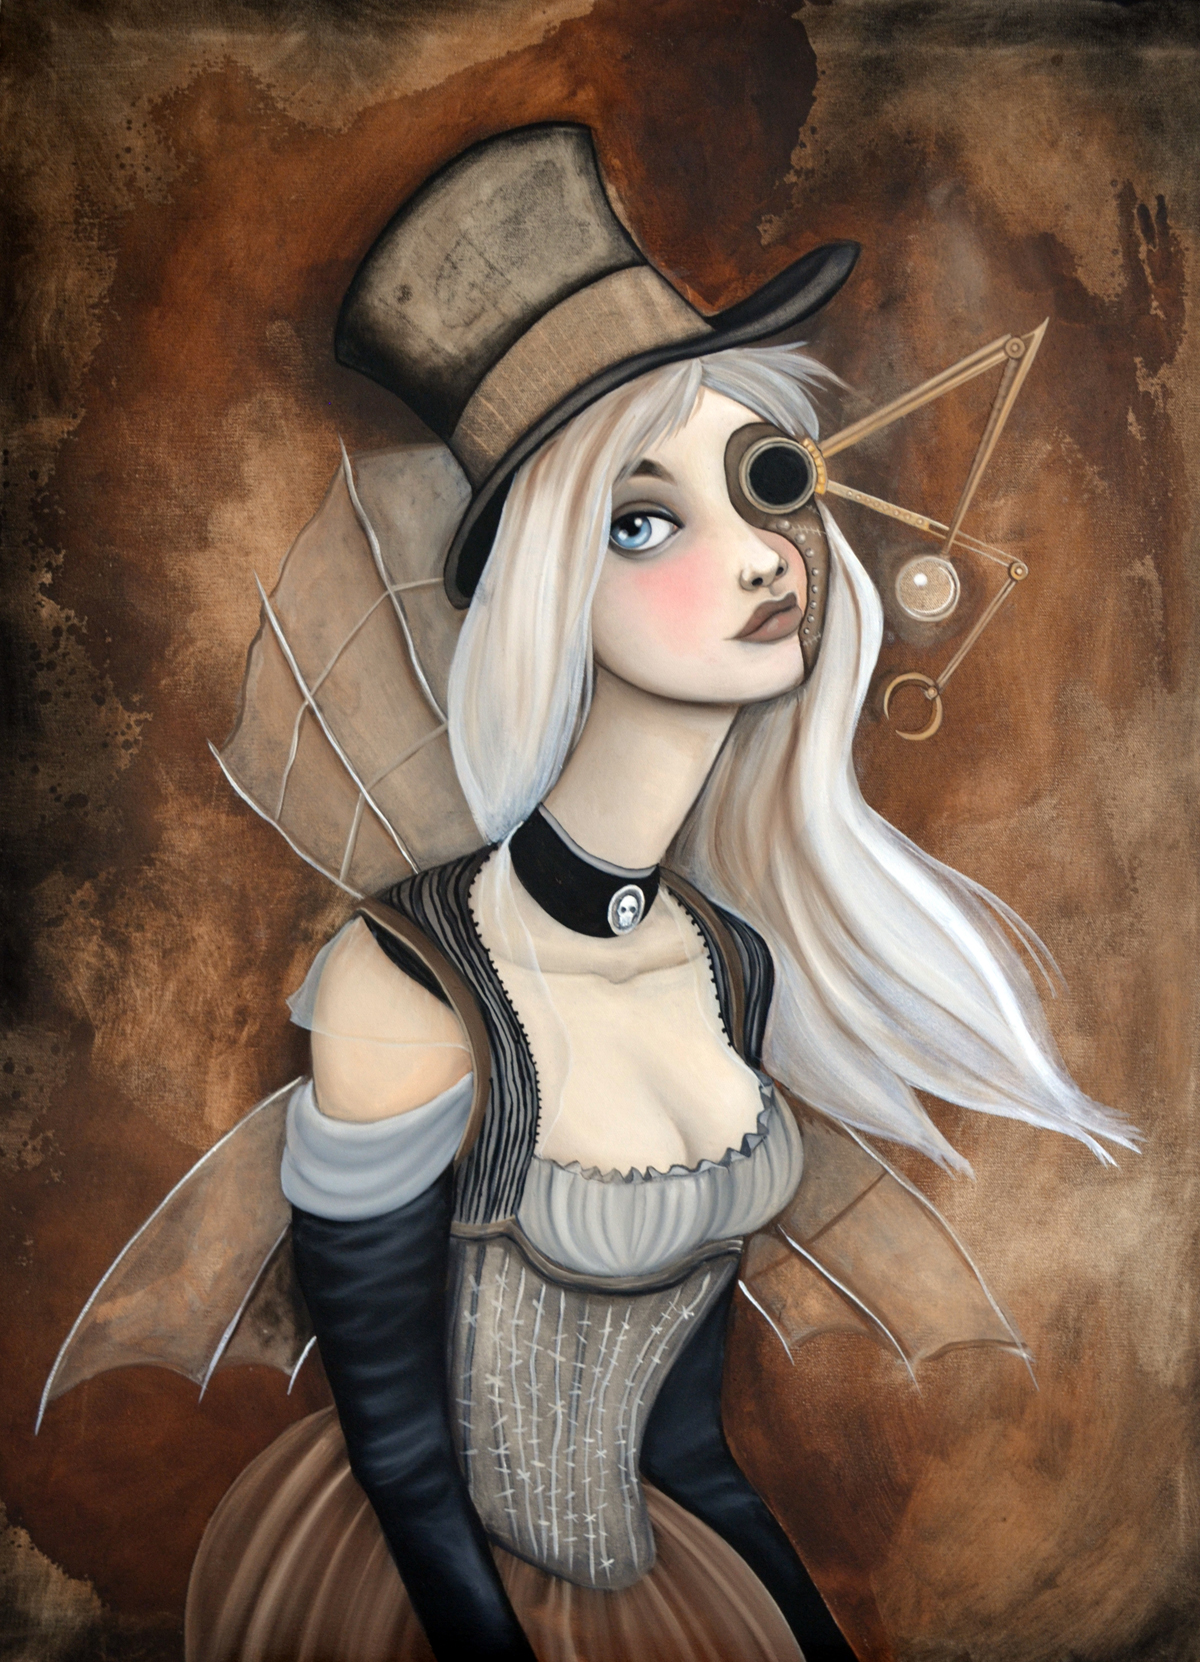 steampunk_girl_1200.jpg